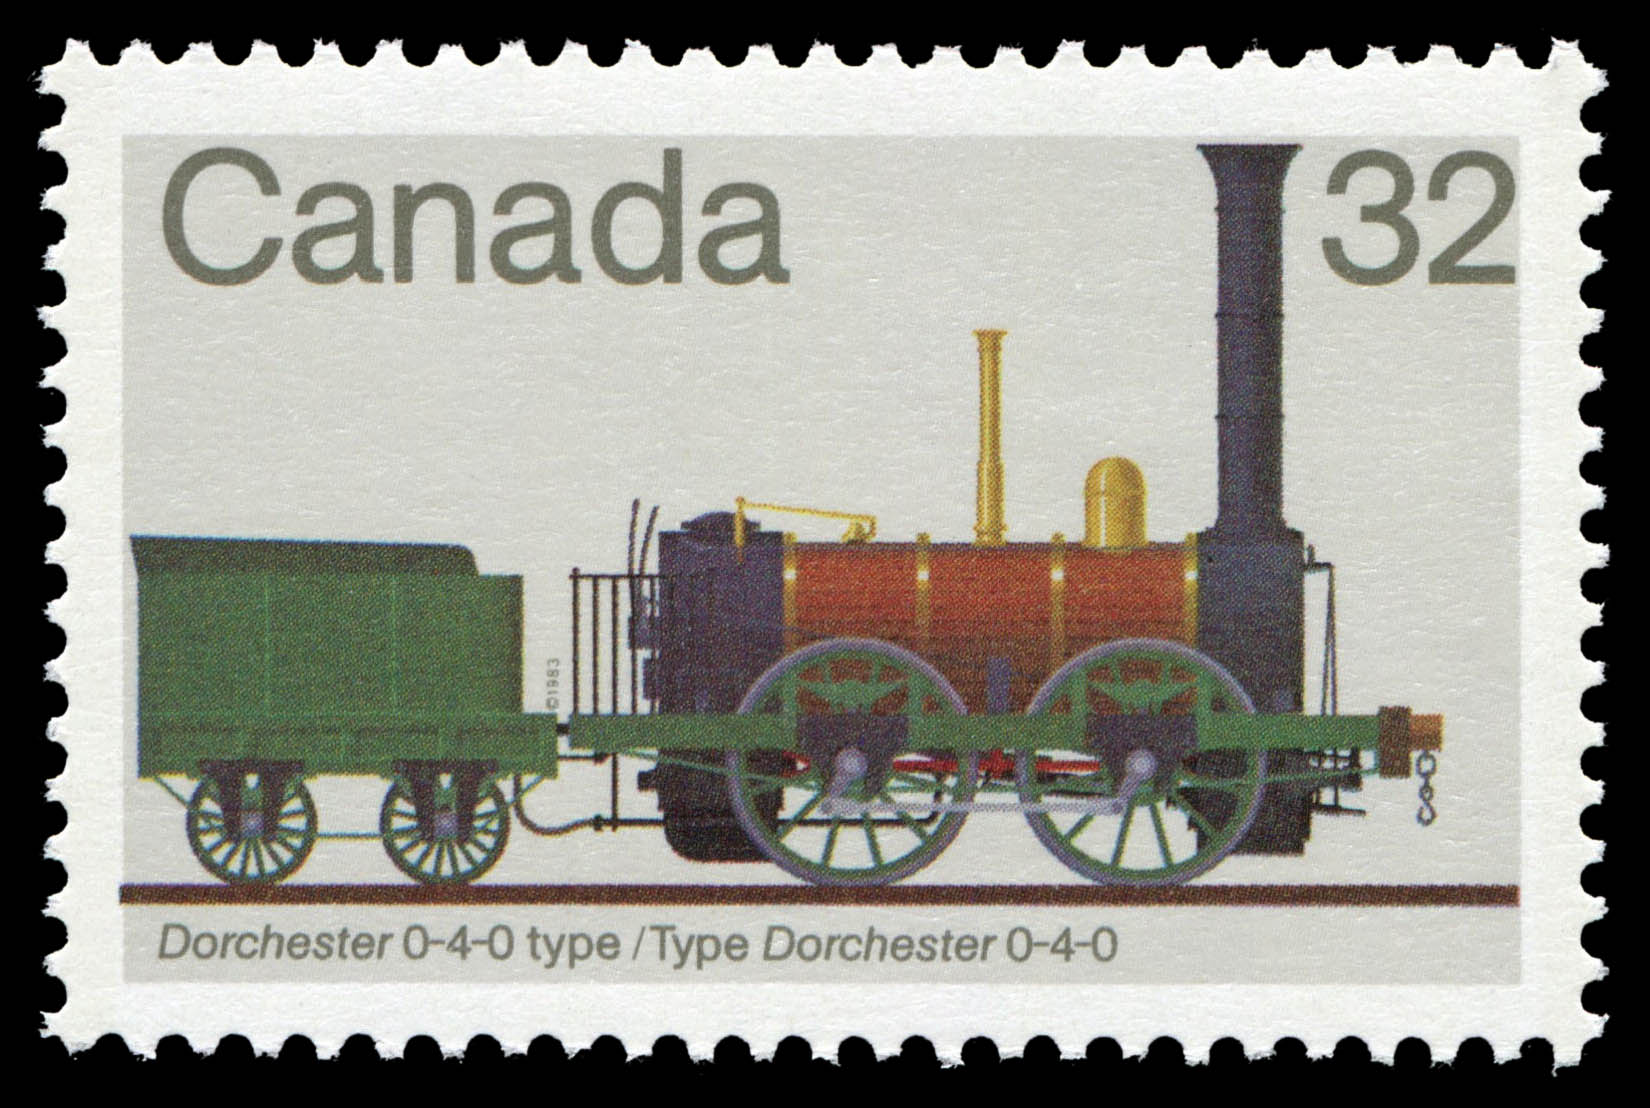 Dorchester 0-4-0 Type Canada Postage Stamp | Canadian Locomotives, 1836-1860